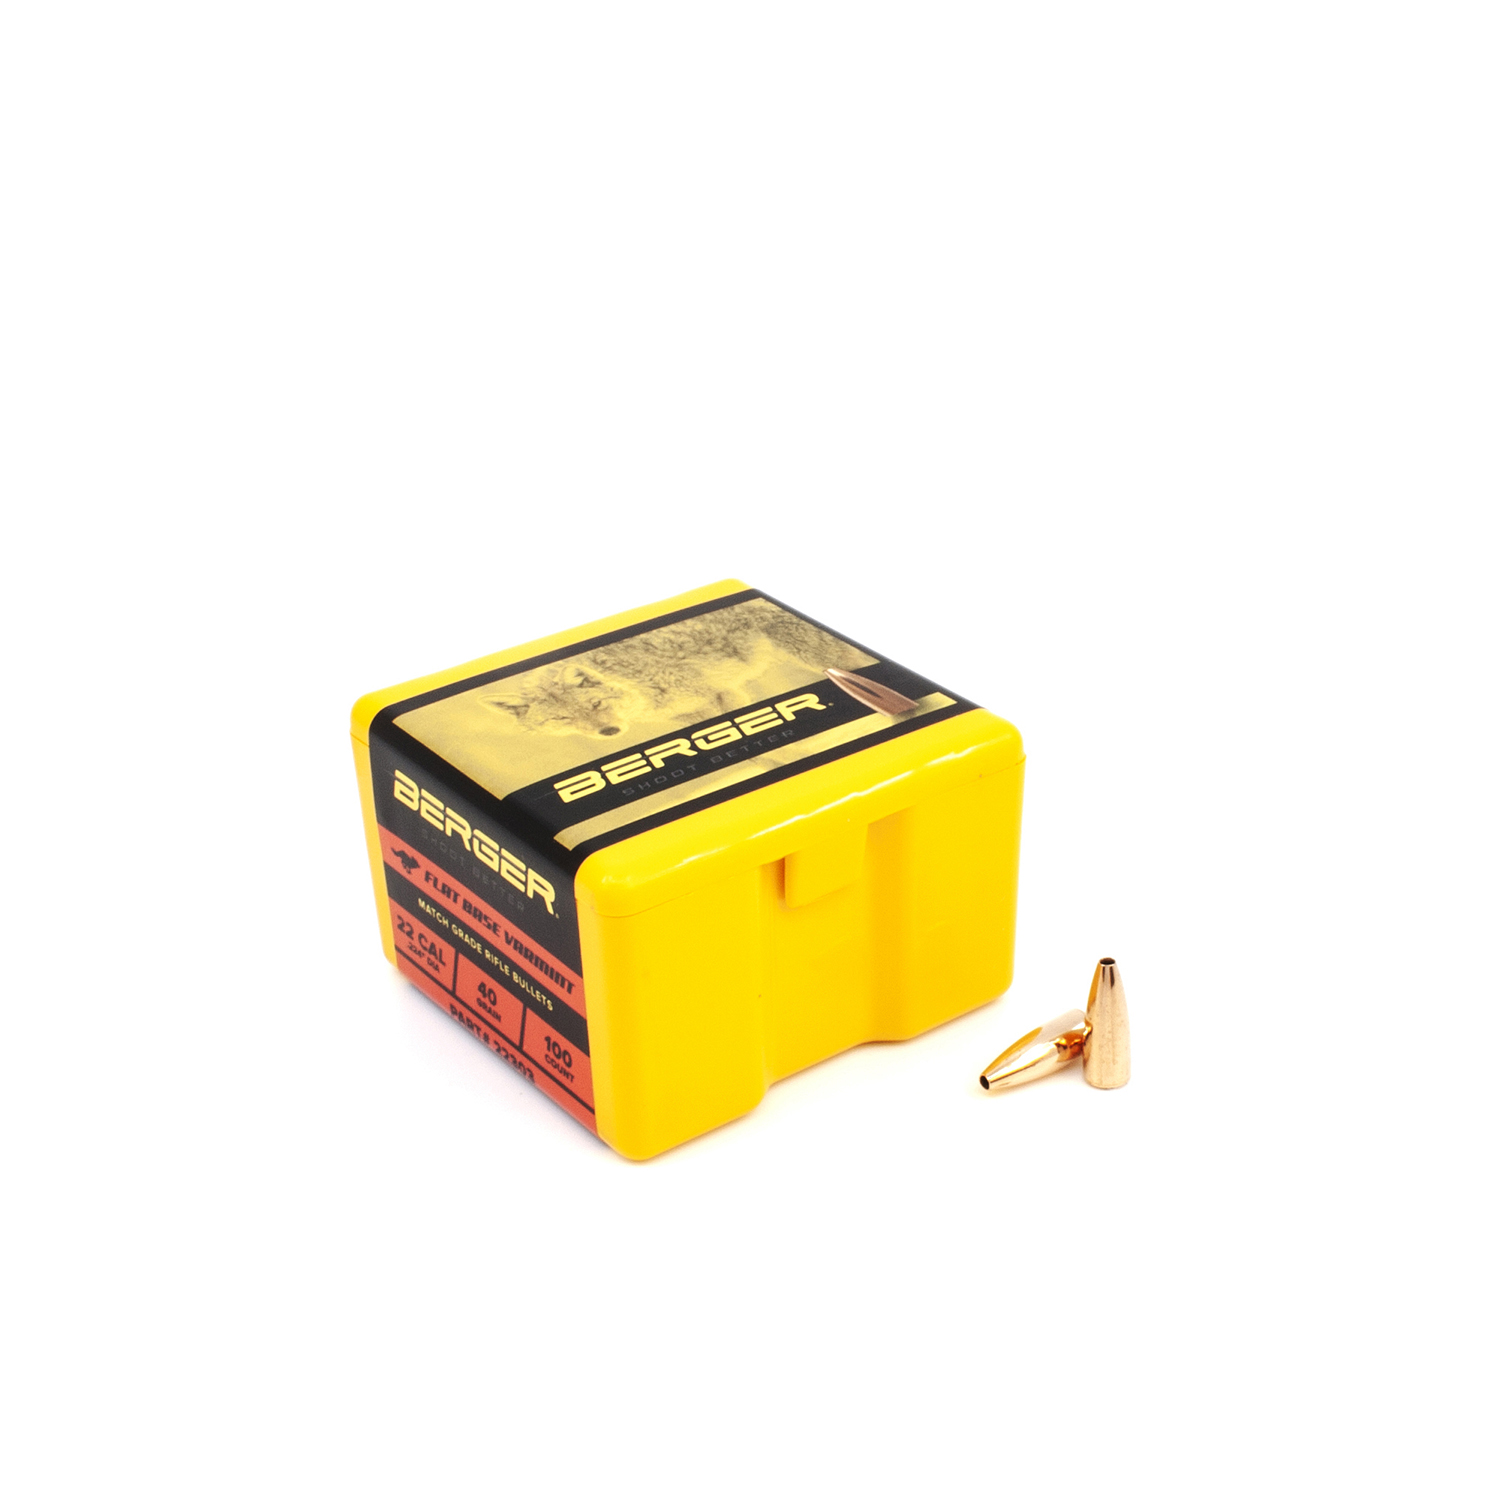 Berger Bullets - .22 cal, 40 gr. Varmint Flat Base - Box of 100